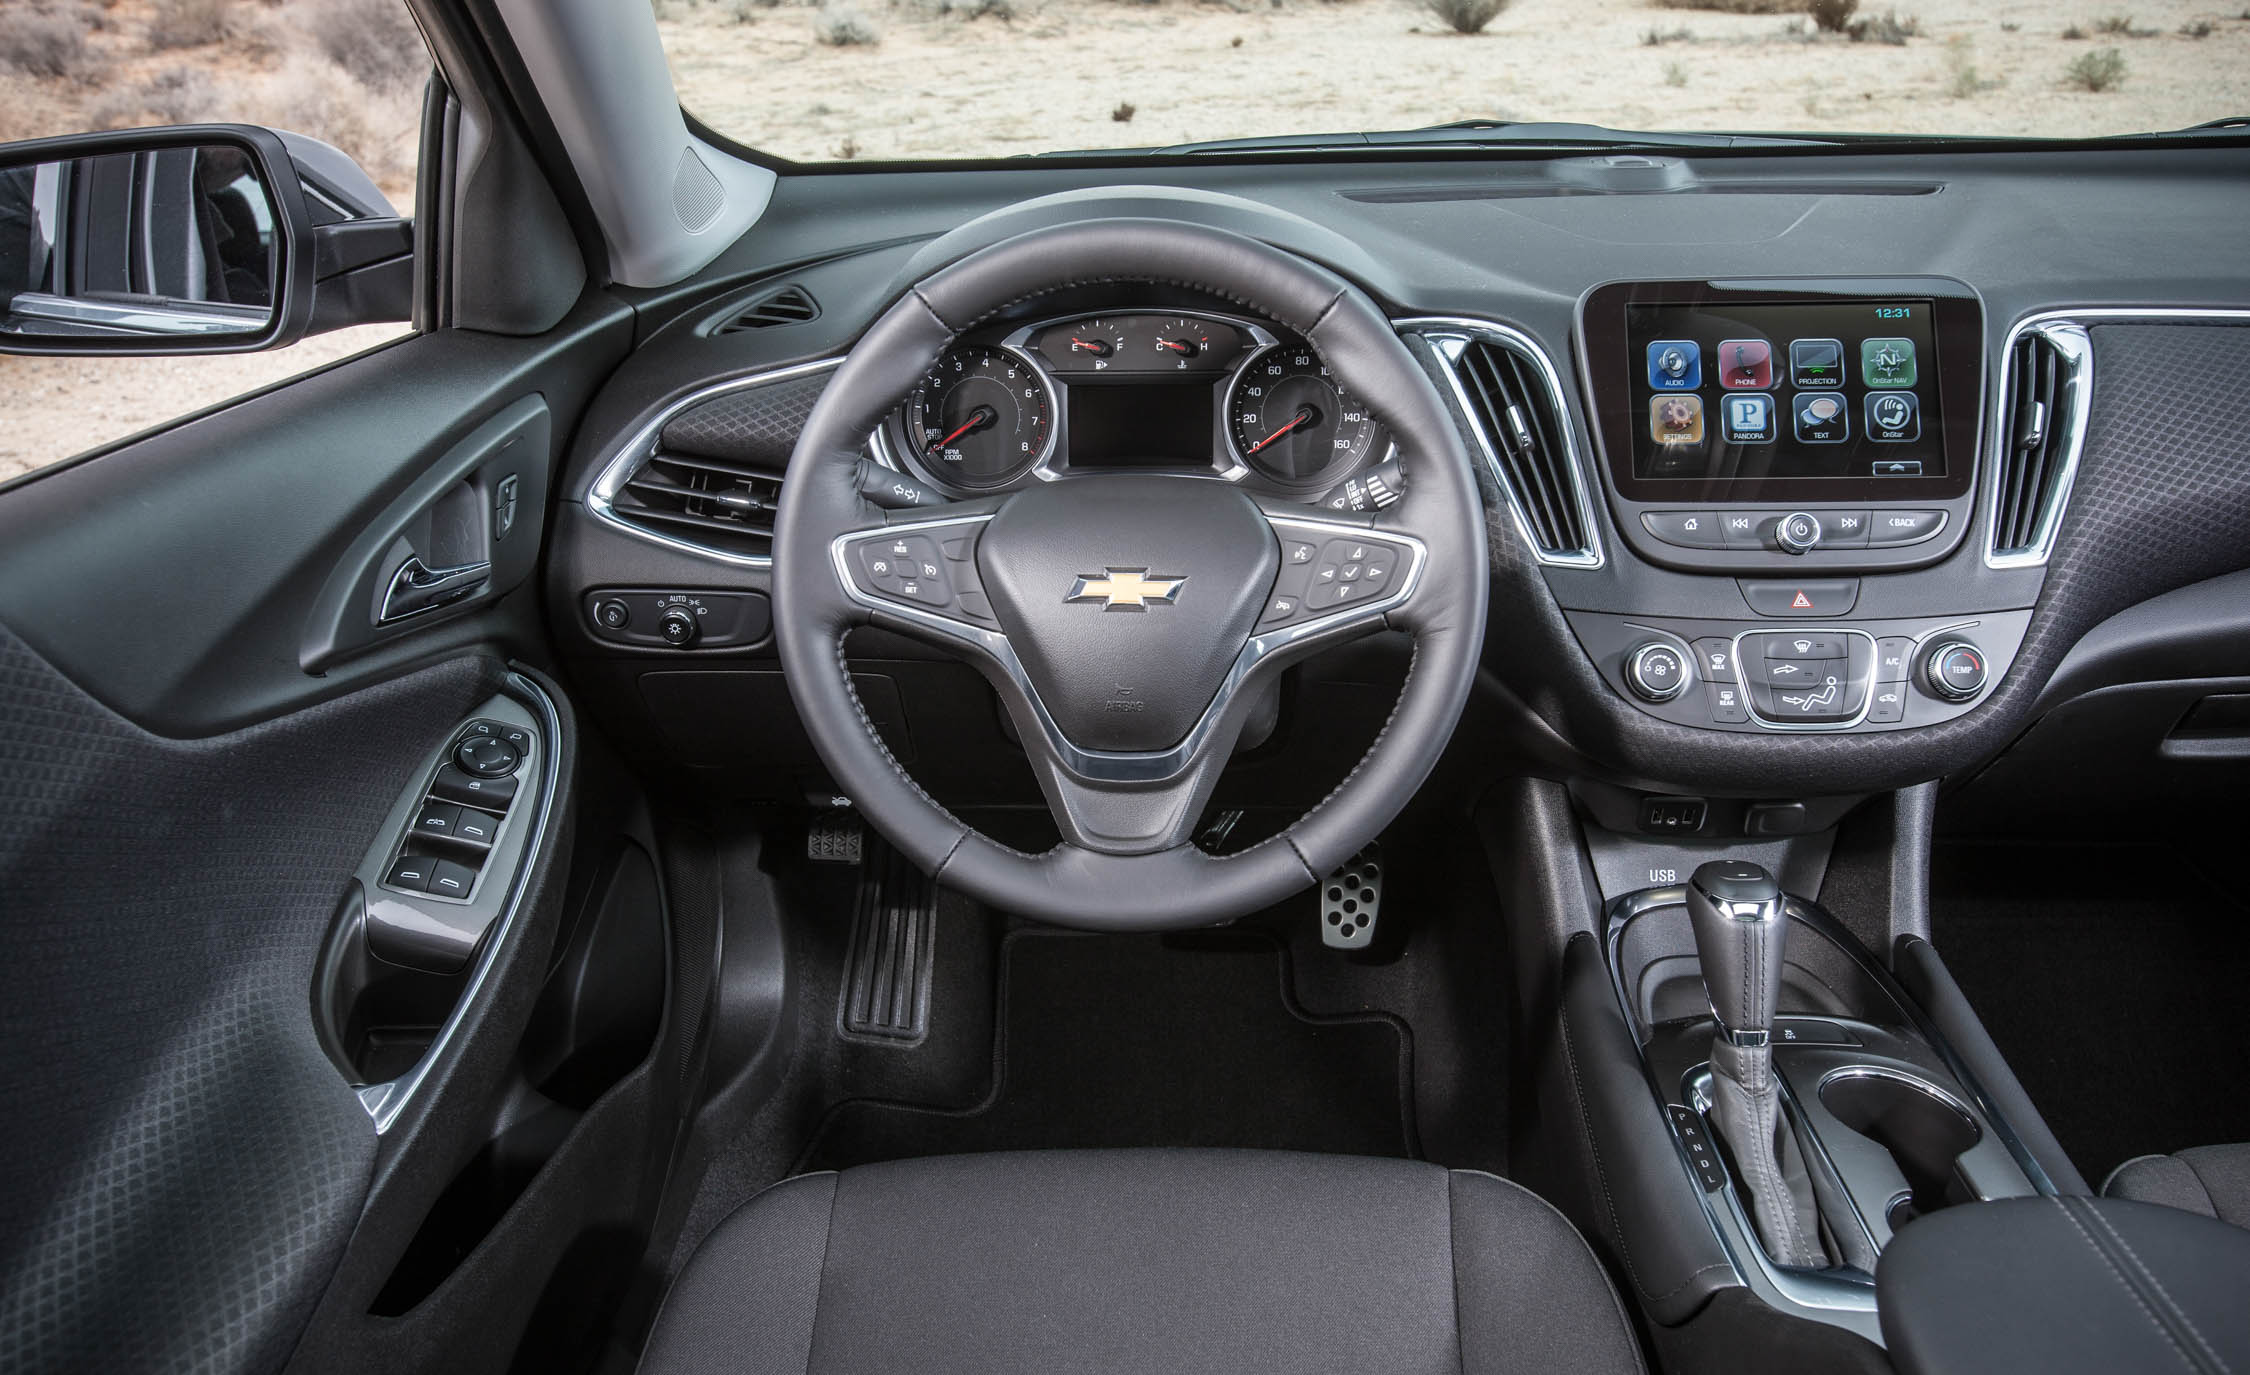 2016 Chevrolet Malibu LT  (Photo 4 of 19)